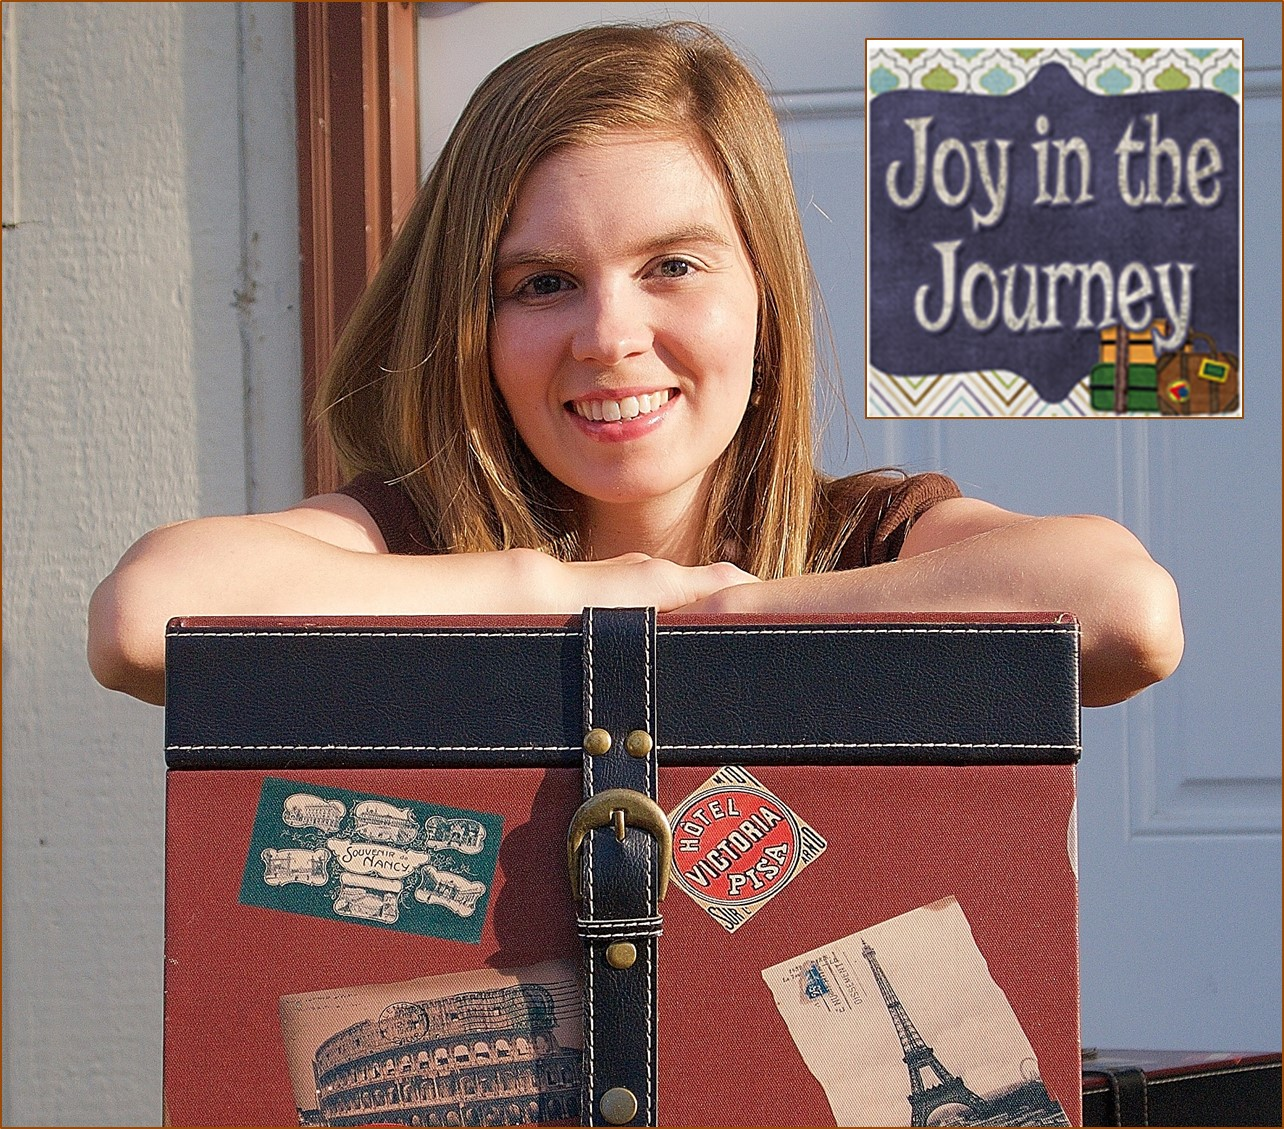 Jessica Lawler @ Joy in the Journey